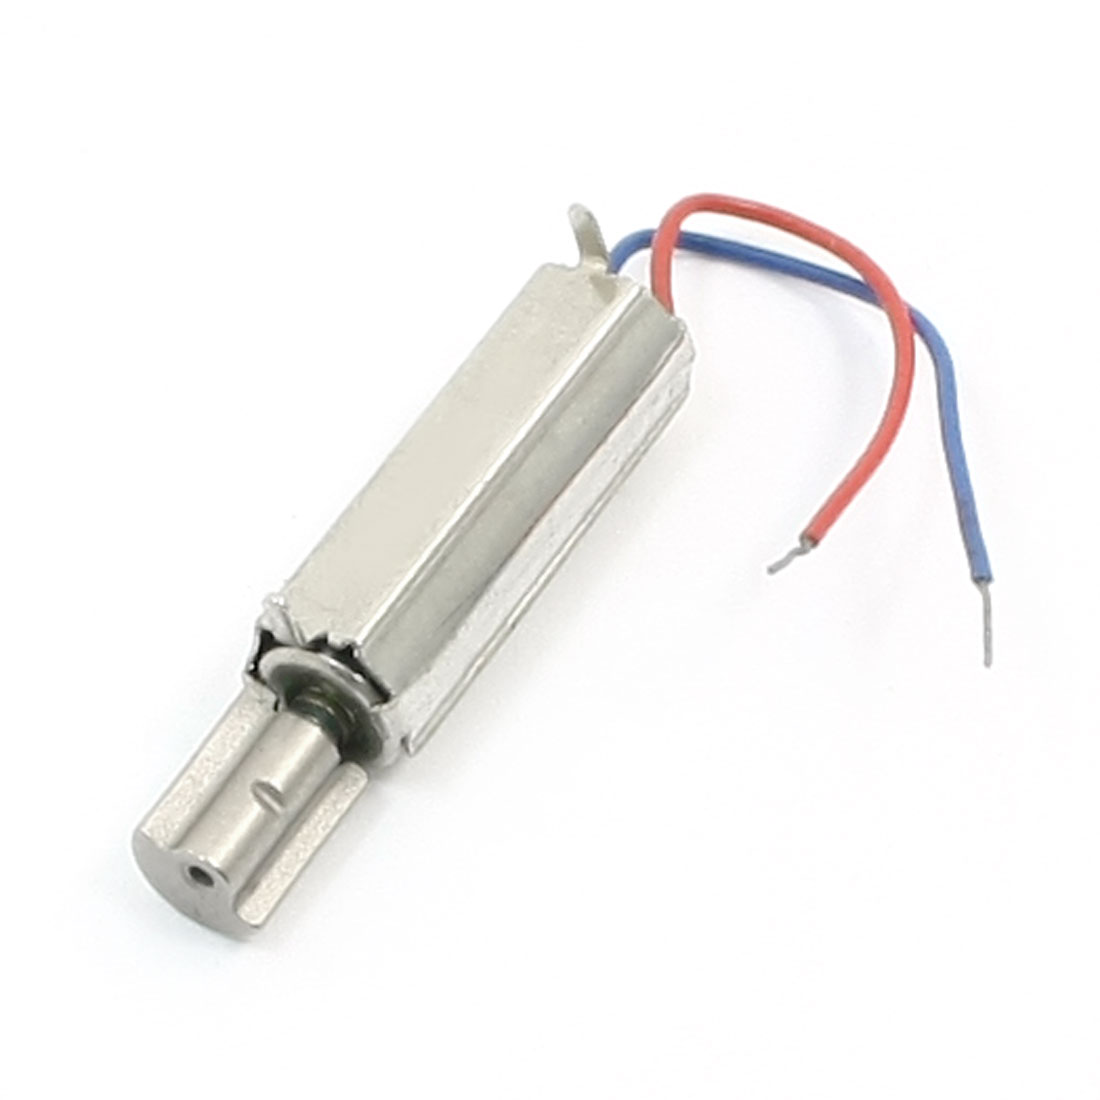 Silver-Tone-DC-3V-20000RPM-Mini-Vibration-Motor-0414-for-Cell-Phone